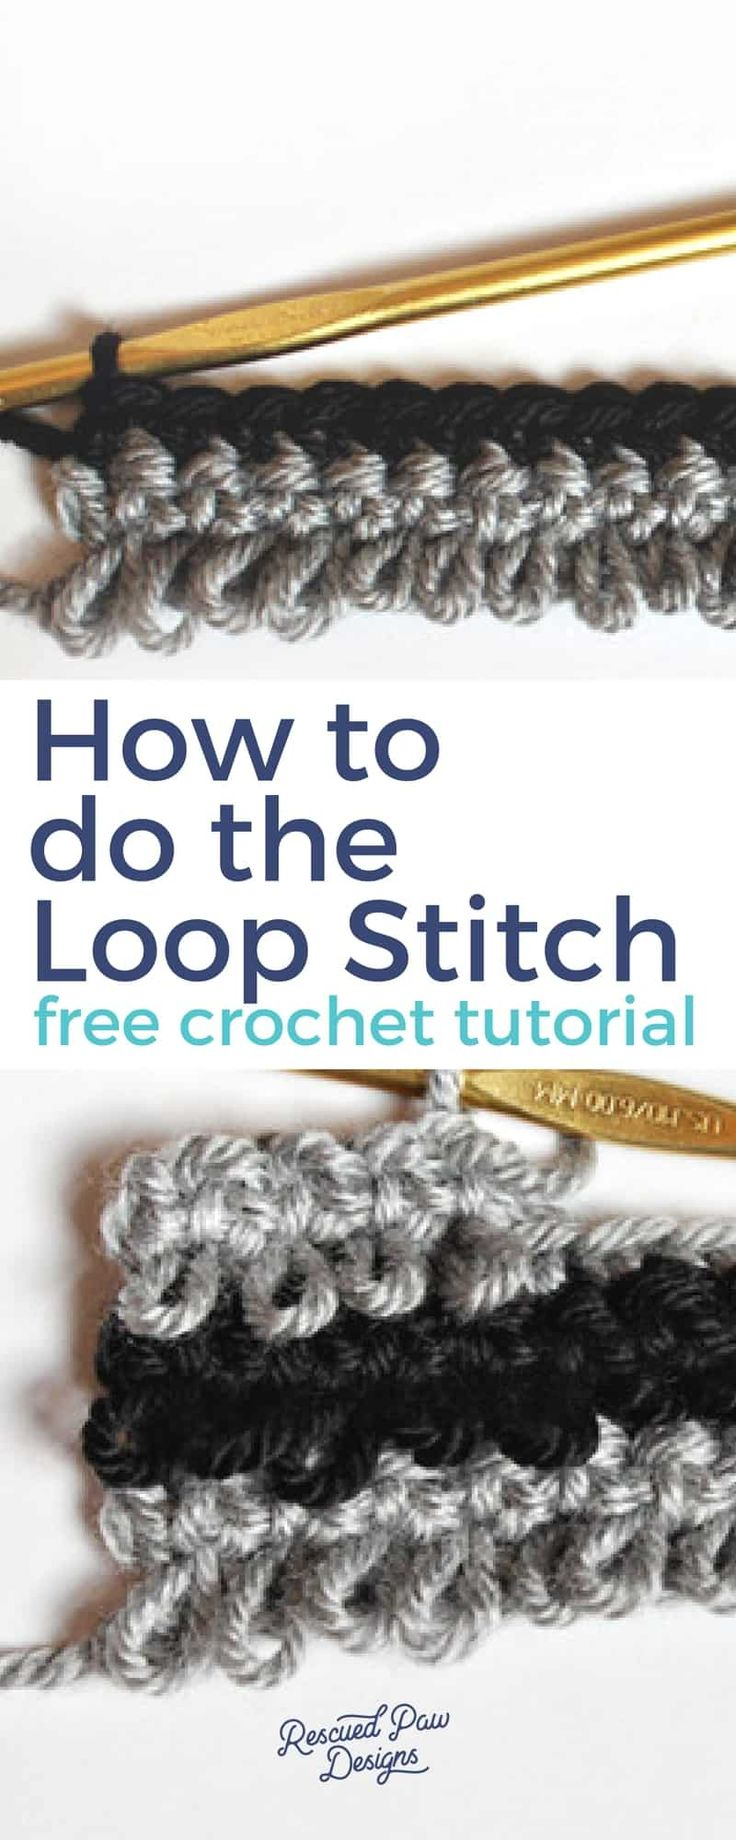 With this list of easy crochet blanket stitches you will be sure to find the one to create the best crochet baby blanket! Each one would be good crochet stitches for blankets! Use all 7 crochet stitches for just one! More free patterns just like this can be found at www.rescuedpawdesigns.com! Free and Simple Crochet!